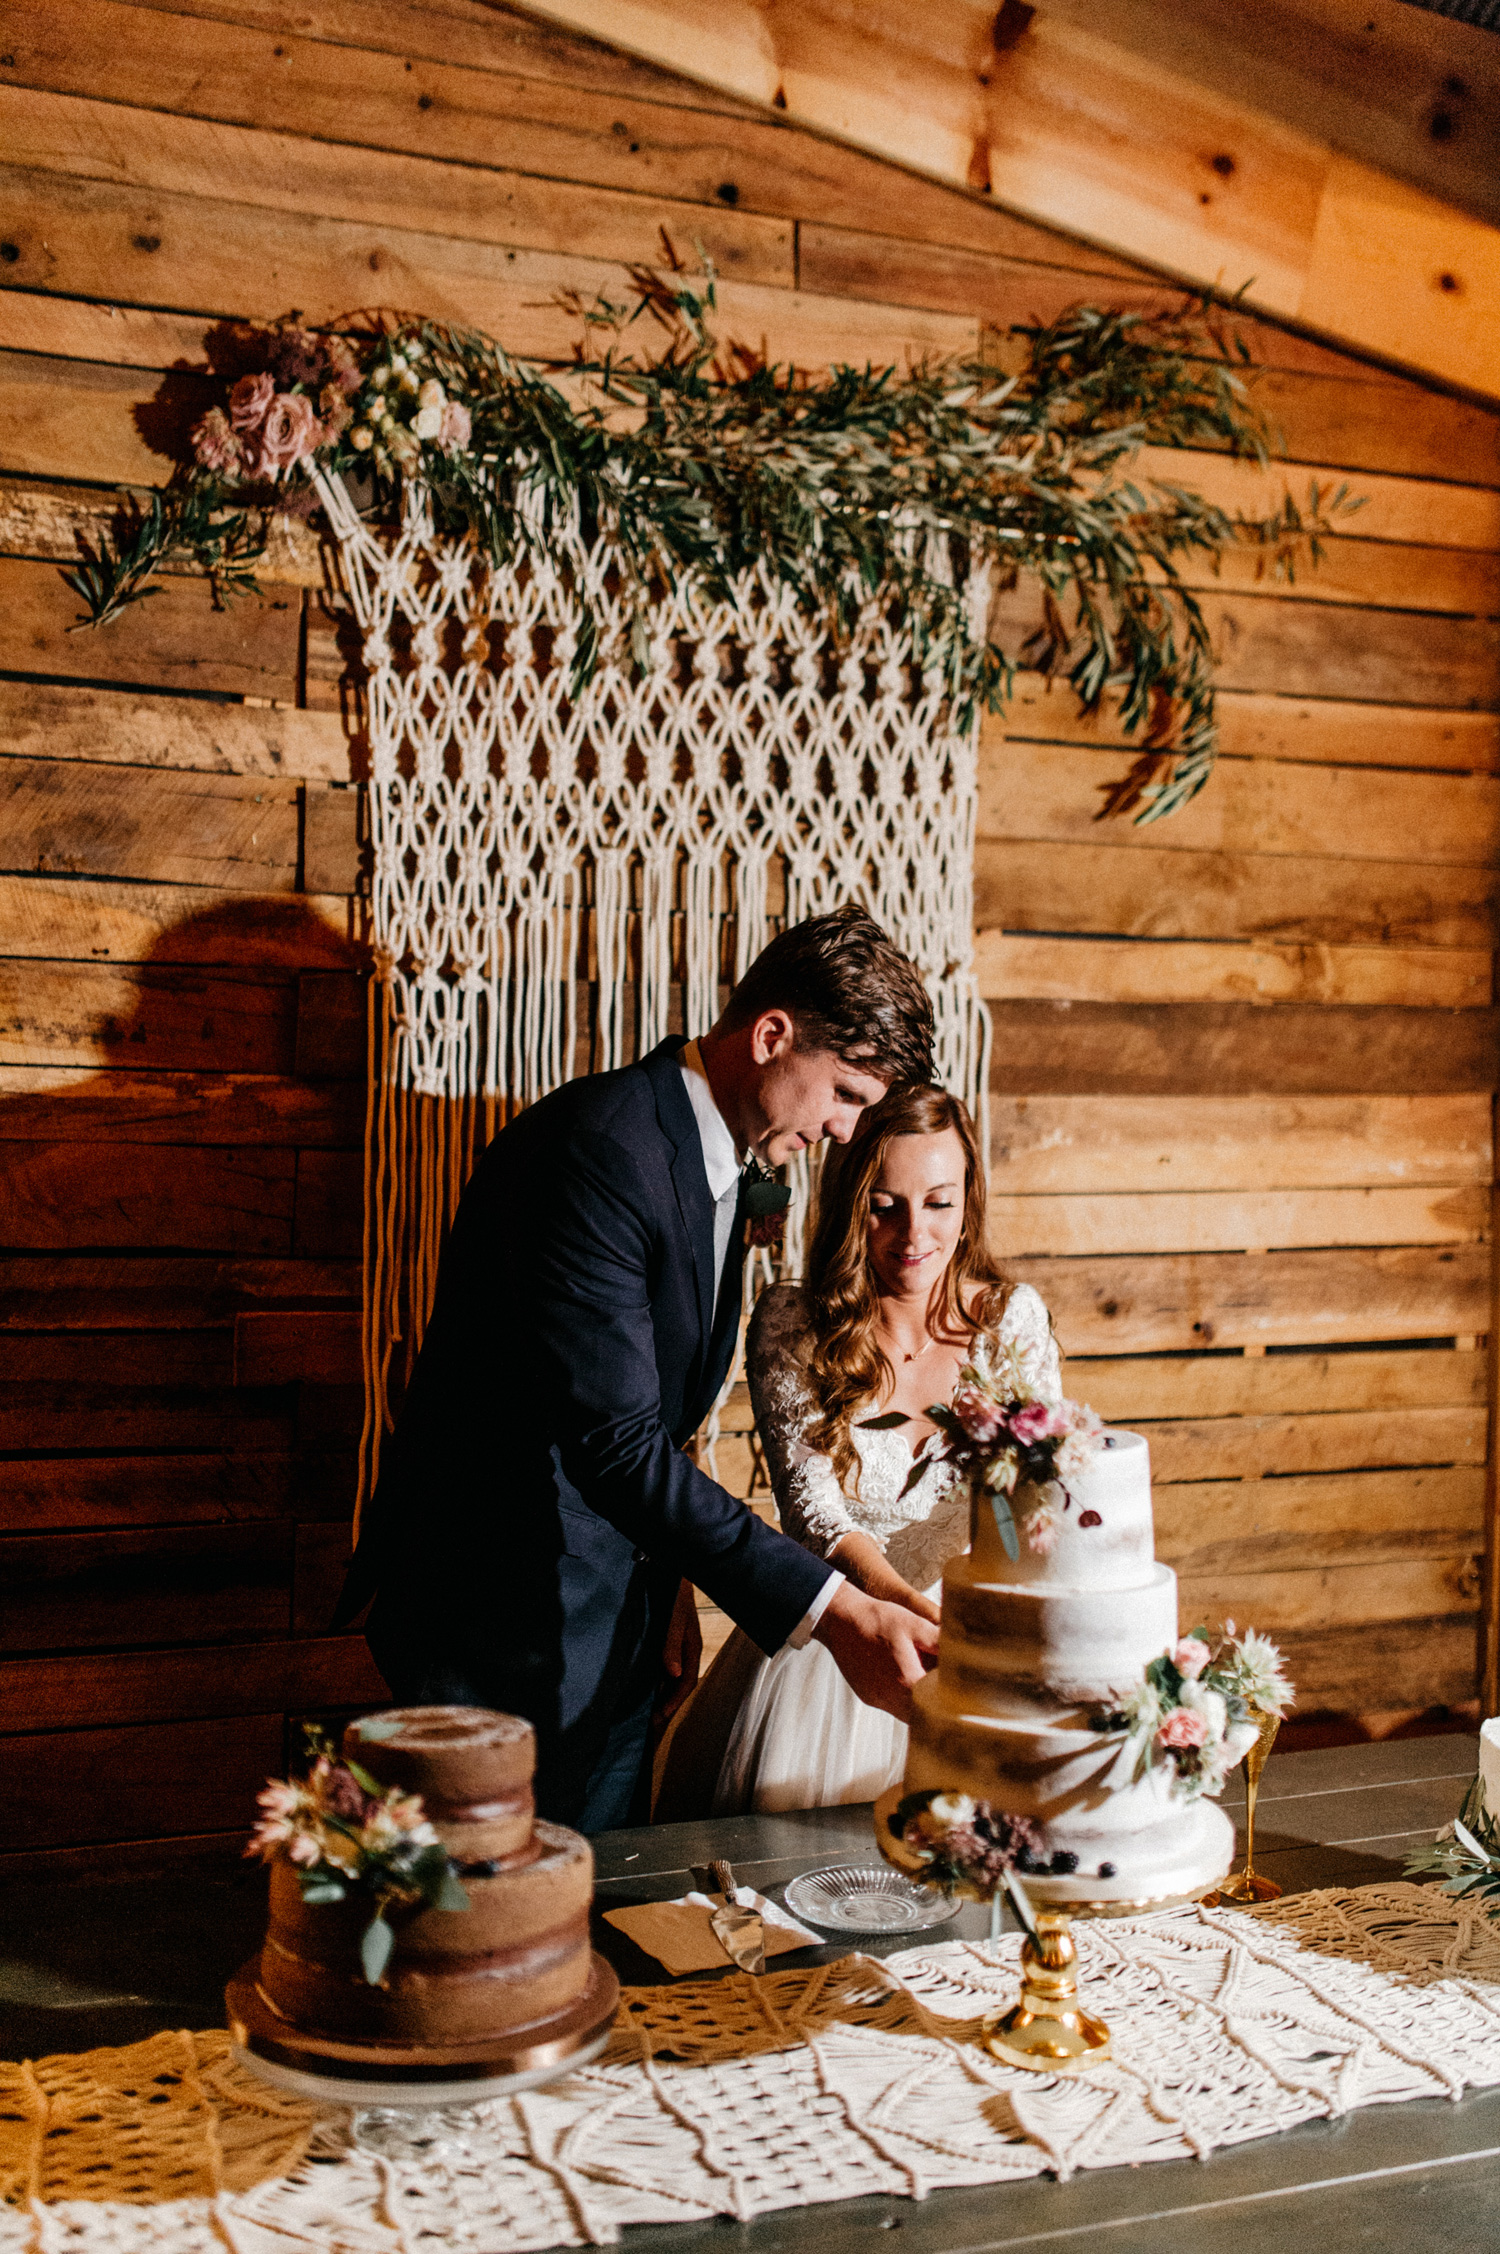 Bride and Groom cut the cake during reception at Southwind Hills